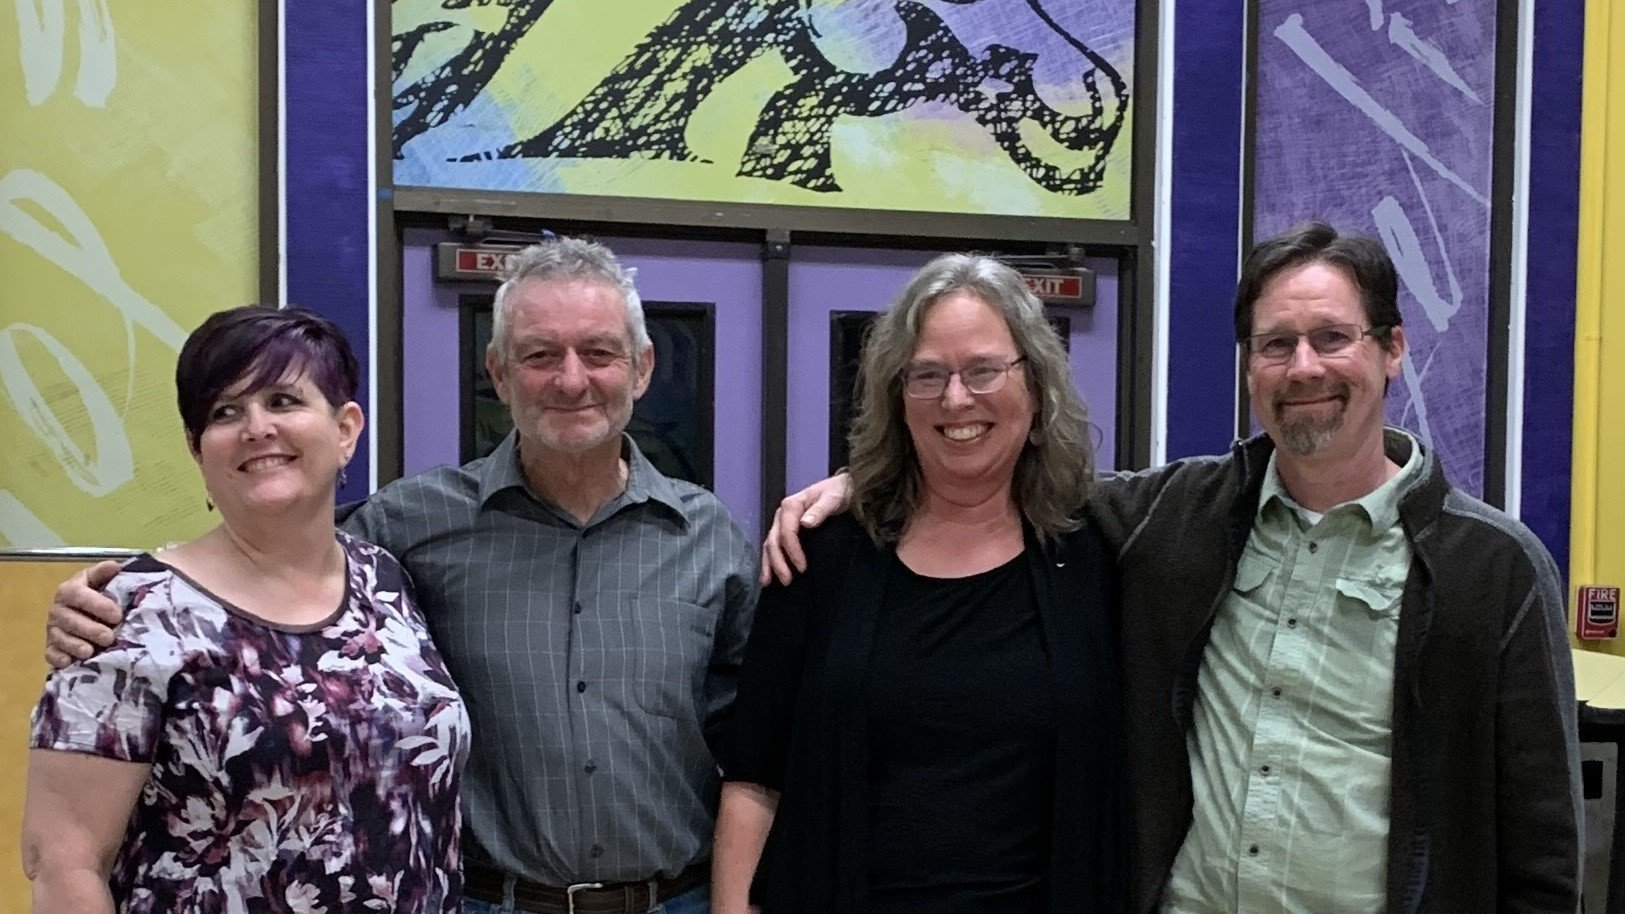 Teachers who volunteered to get the program off the ground in 2010 are pictured above: Ami Barker, Reikor Deacon, Patricia Jekel, and David Leonard.